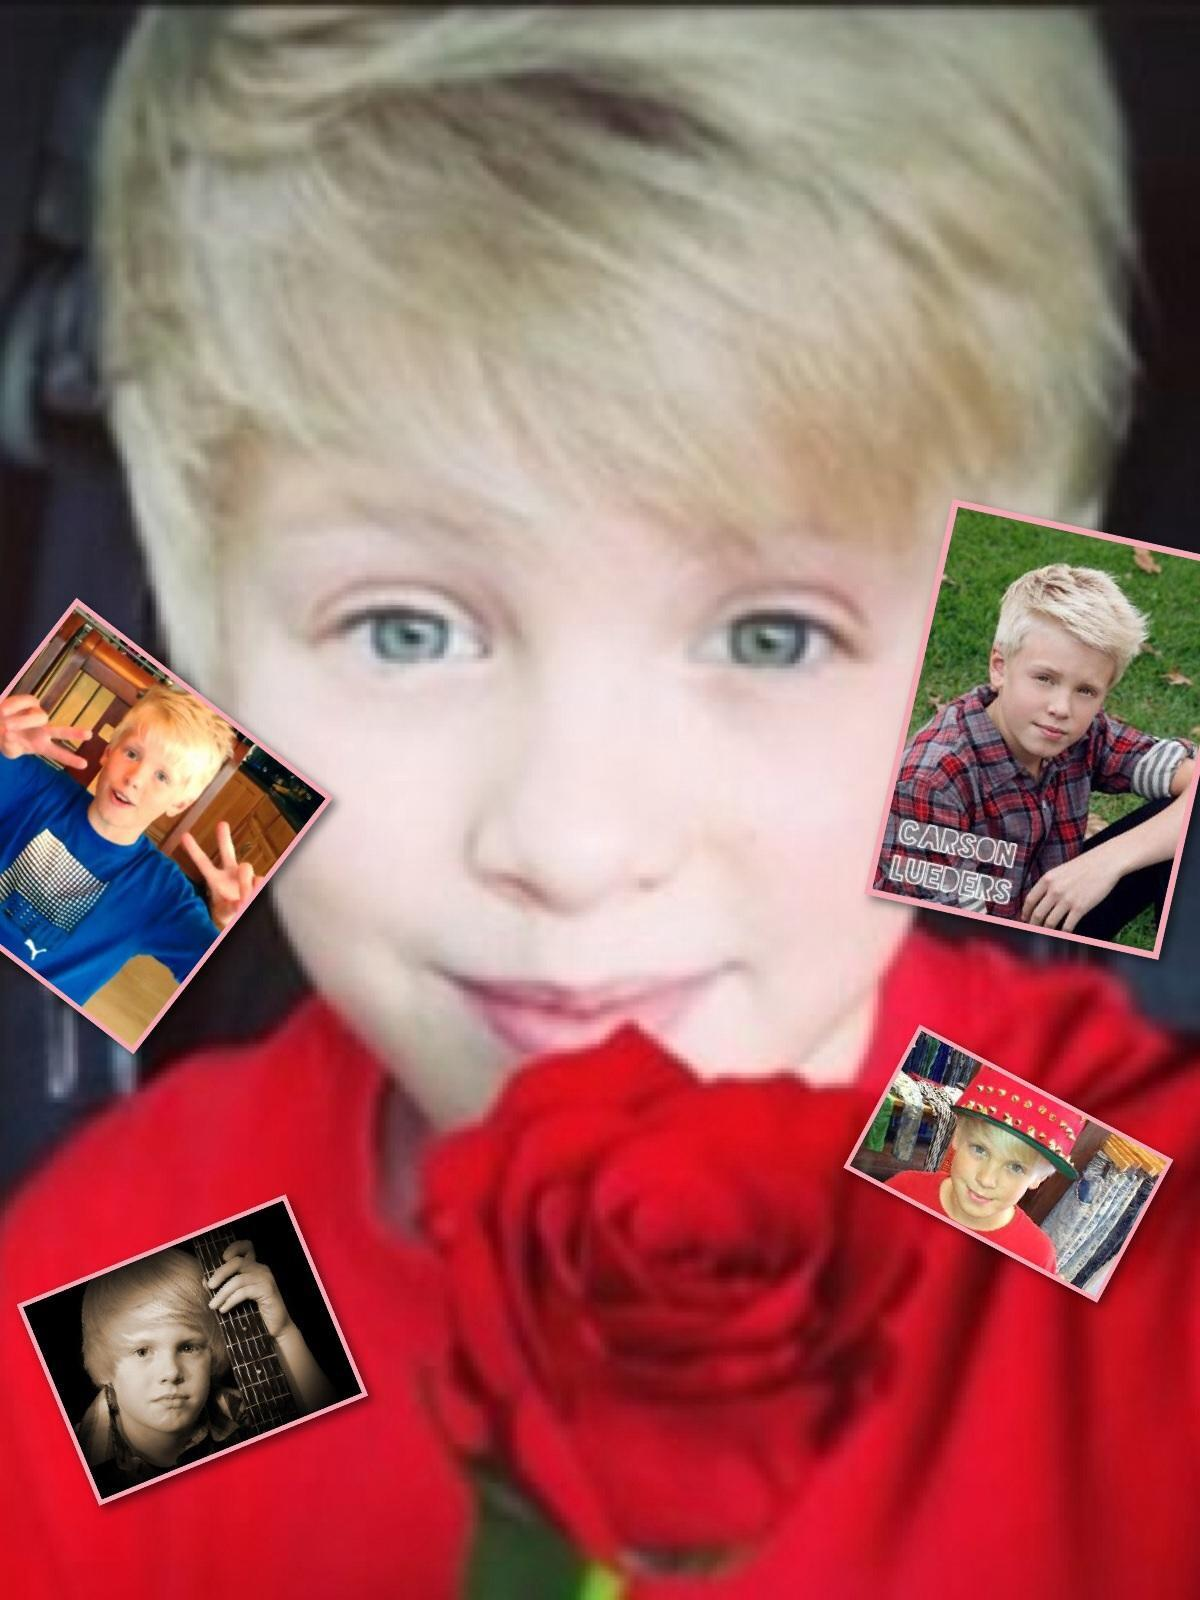 Carson. Lueders